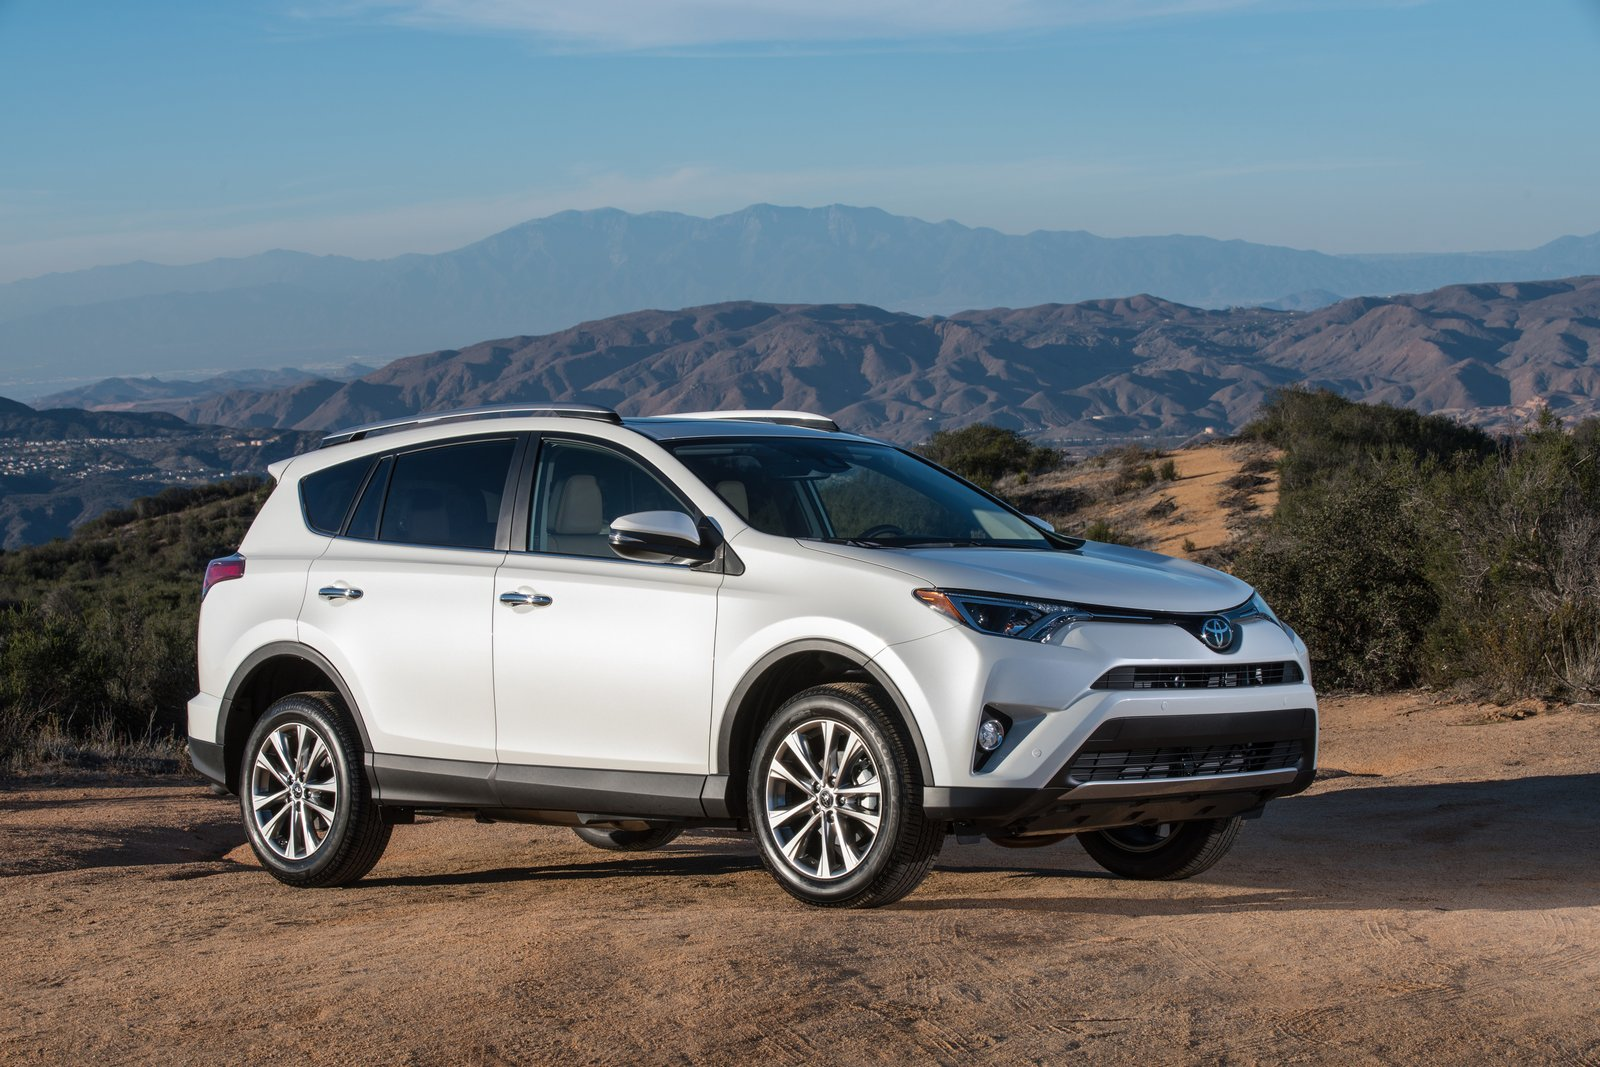 2017 toyota rav4 receives price cuts of up to 1 330